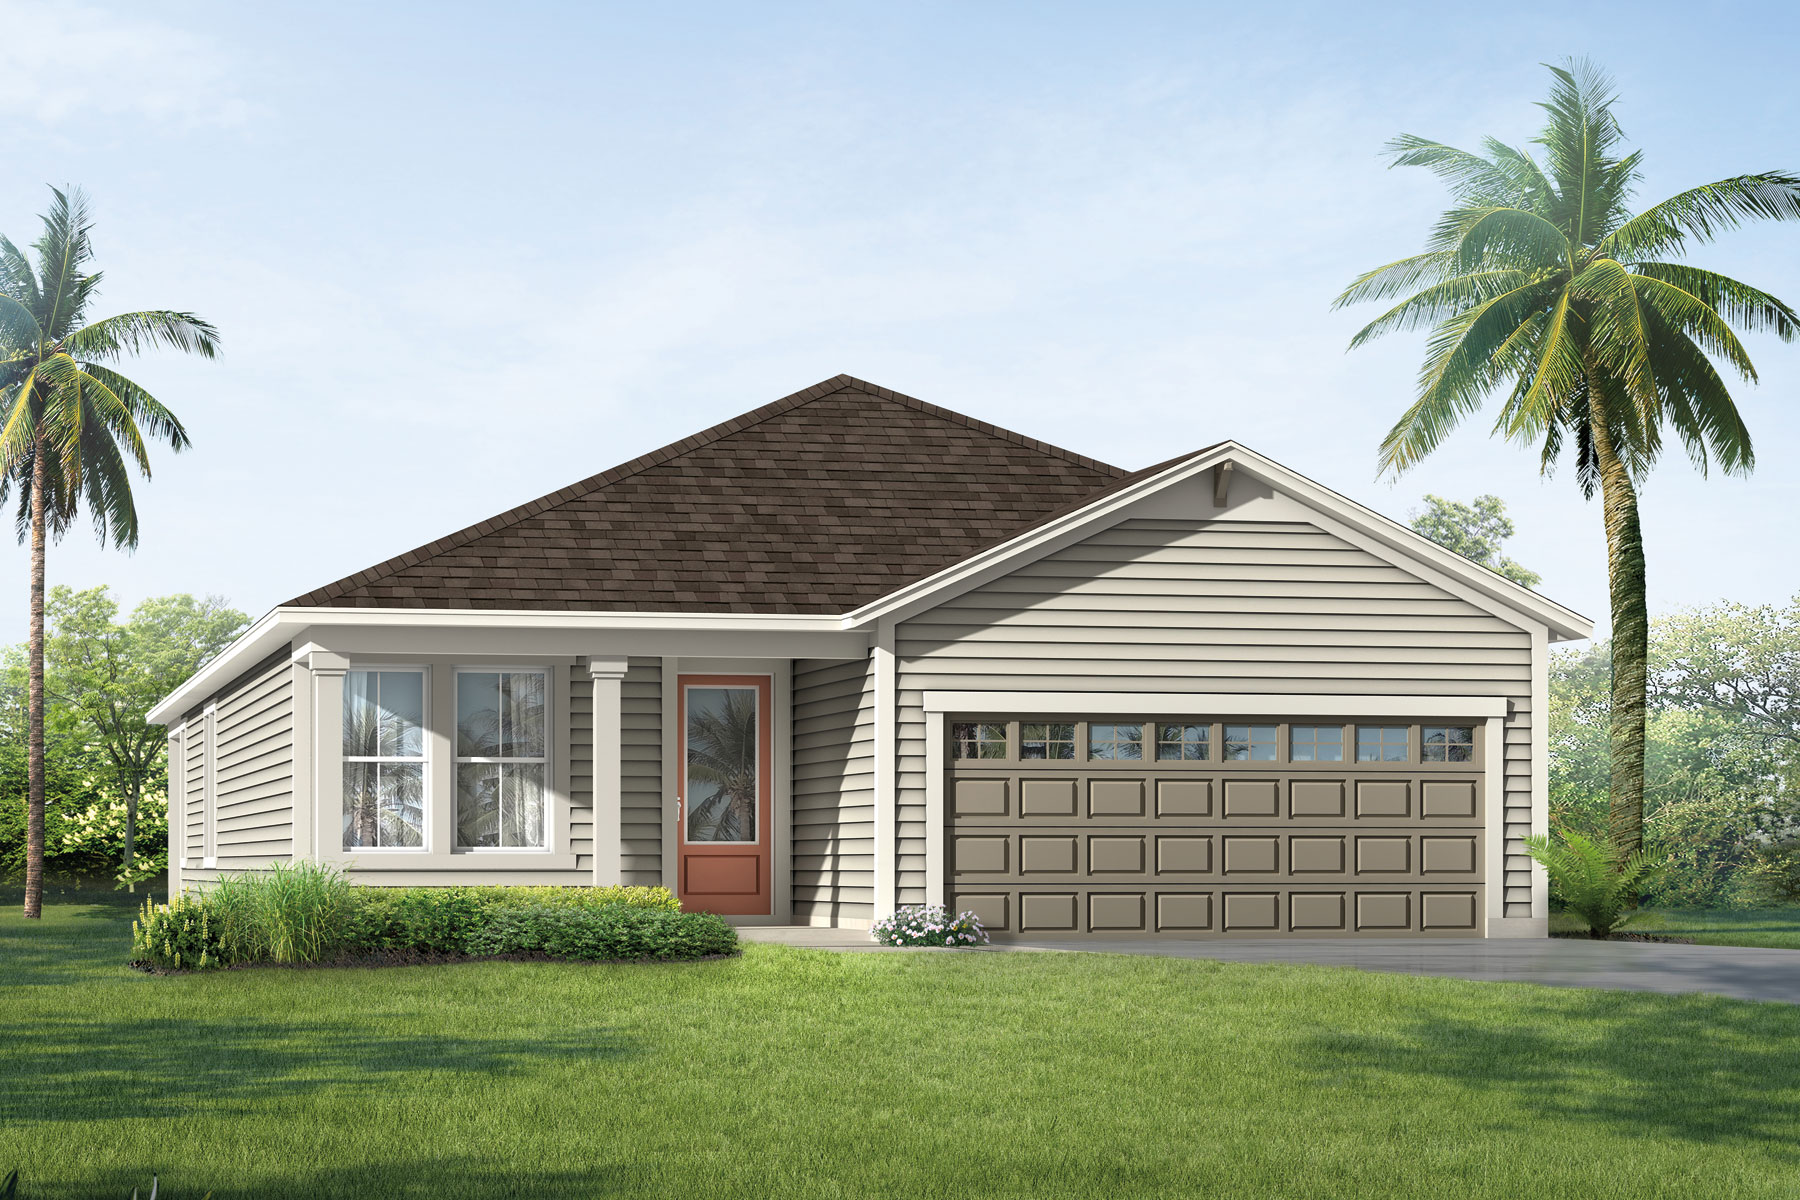 Heron Plan Elevation Front at RiverTown - Arbors in St. Johns Florida by Mattamy Homes